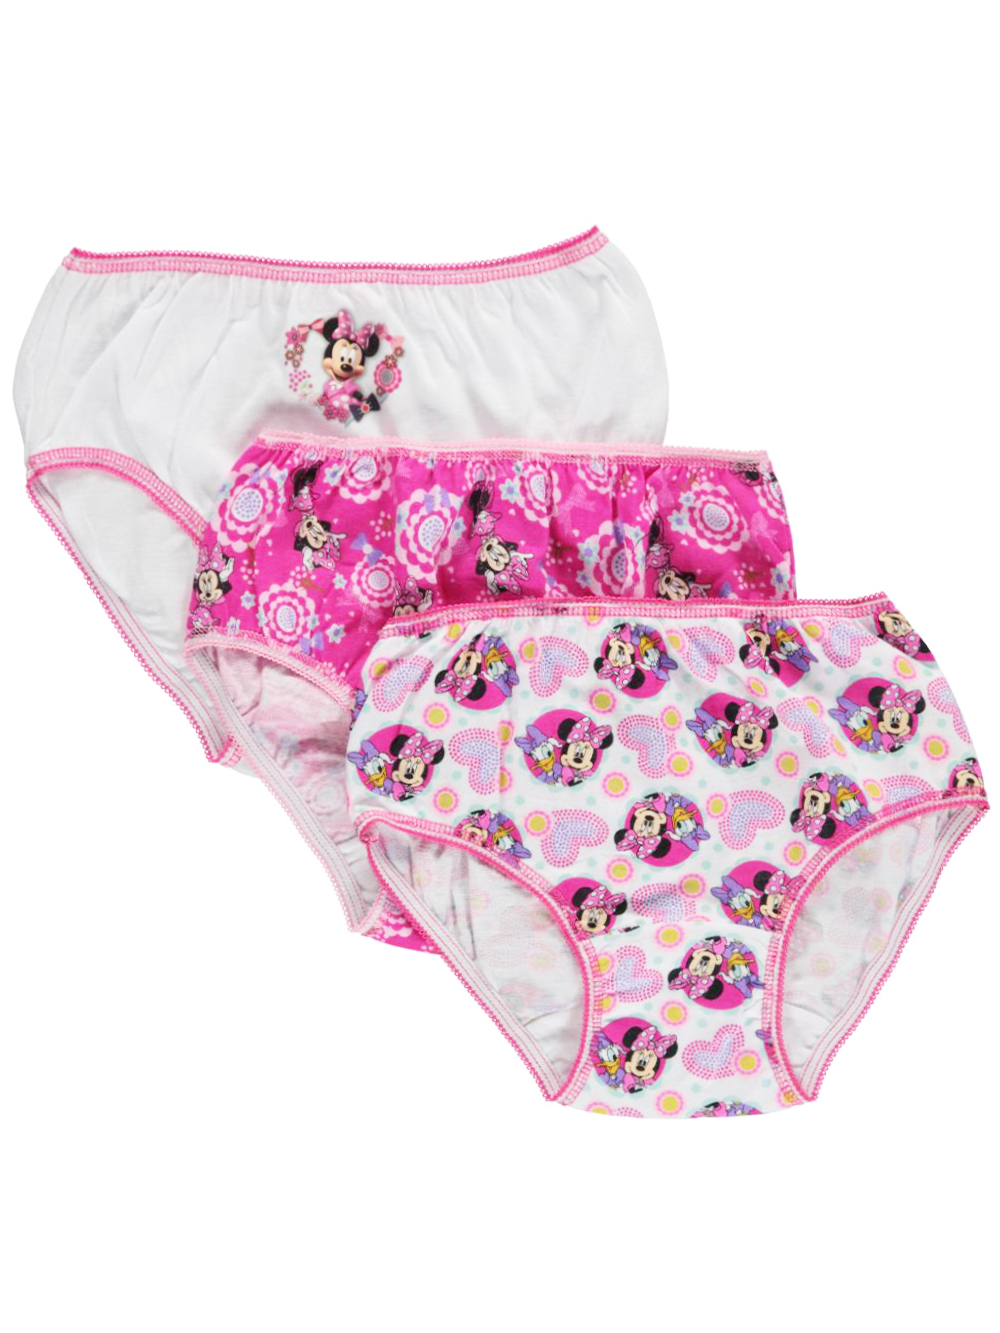 Girls Pink and Multicolor Underwear